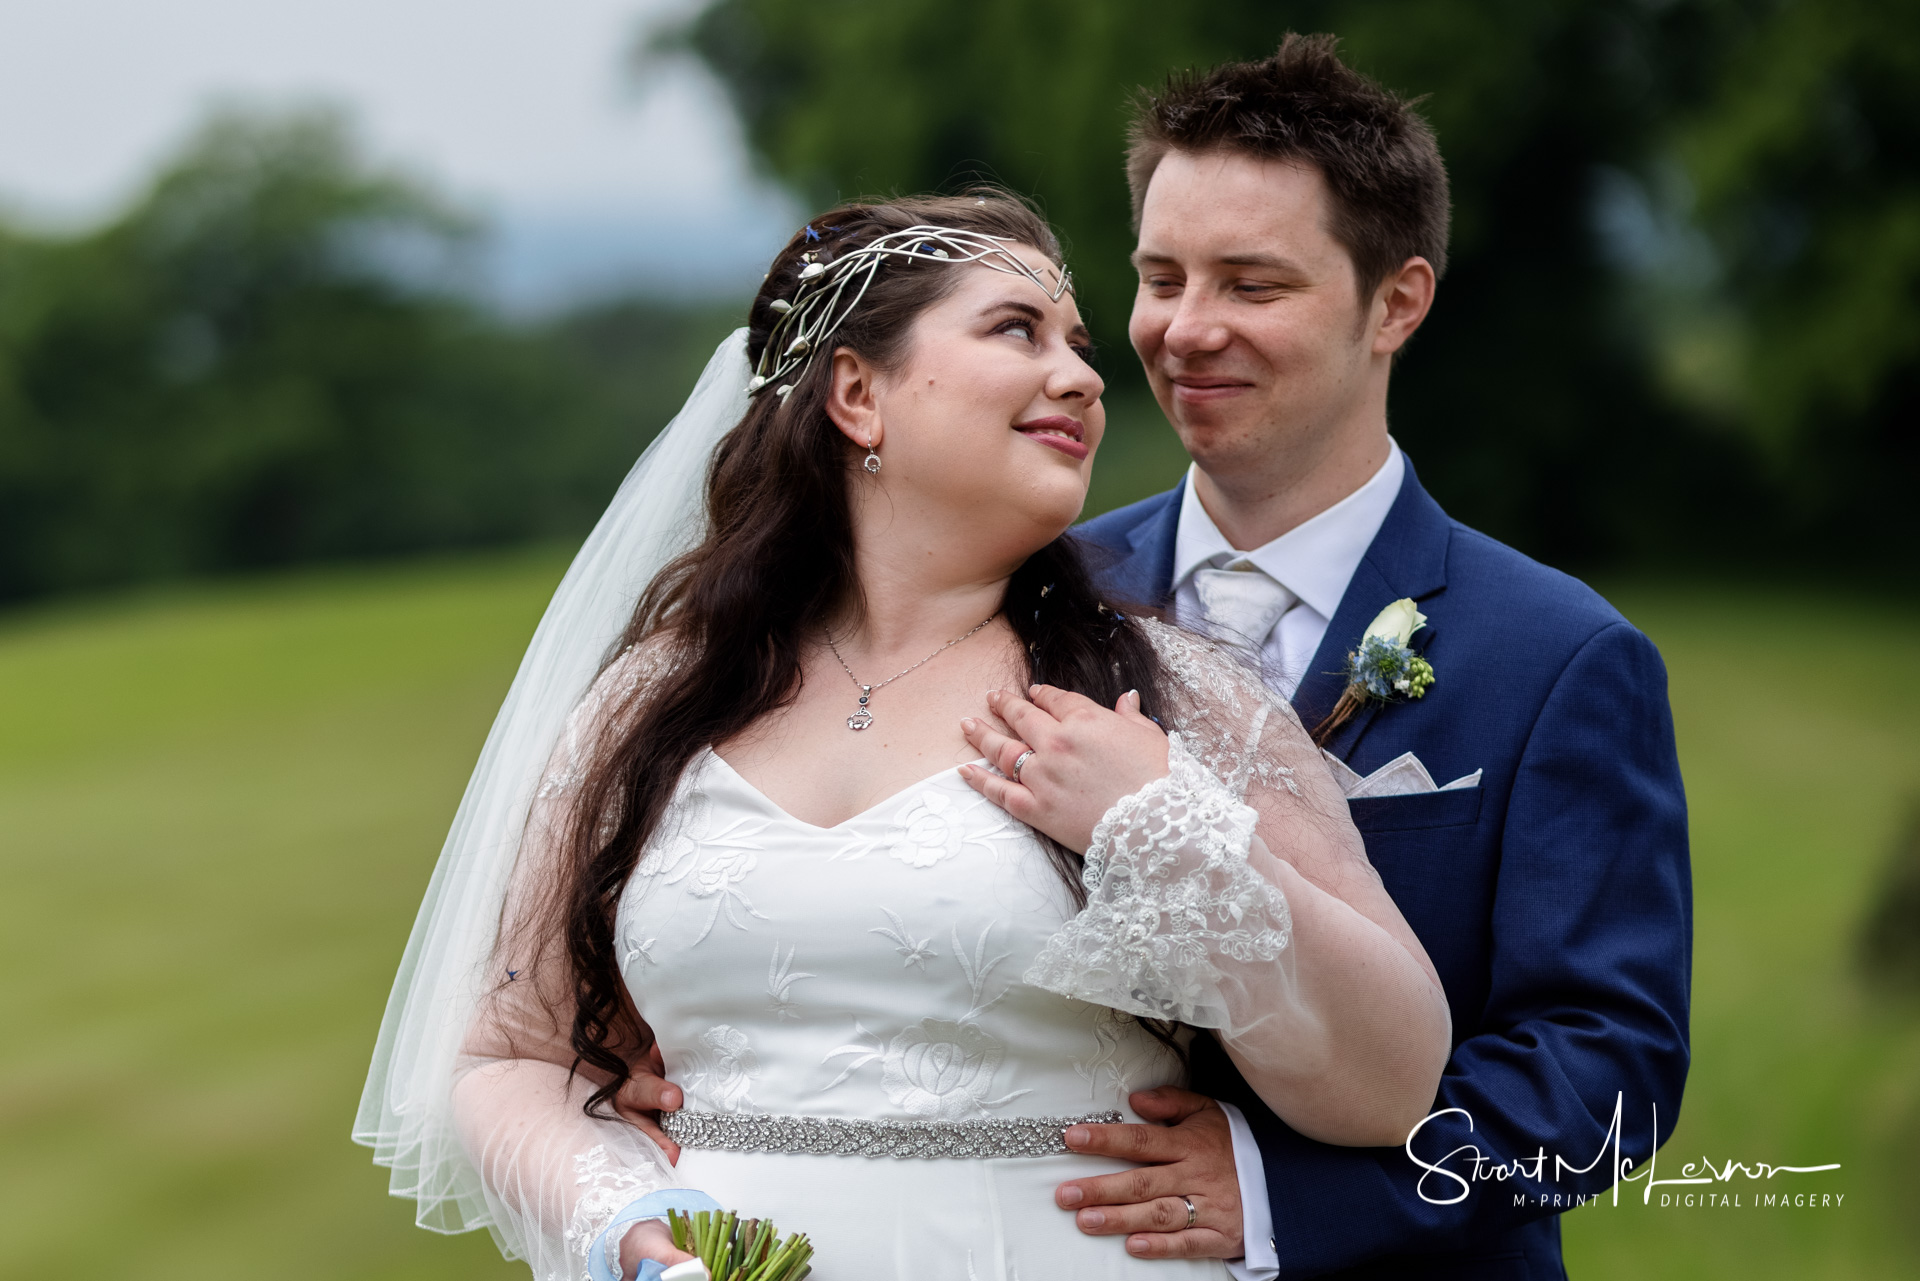 Wedding – Jemma and Mike at Shrigley Hall